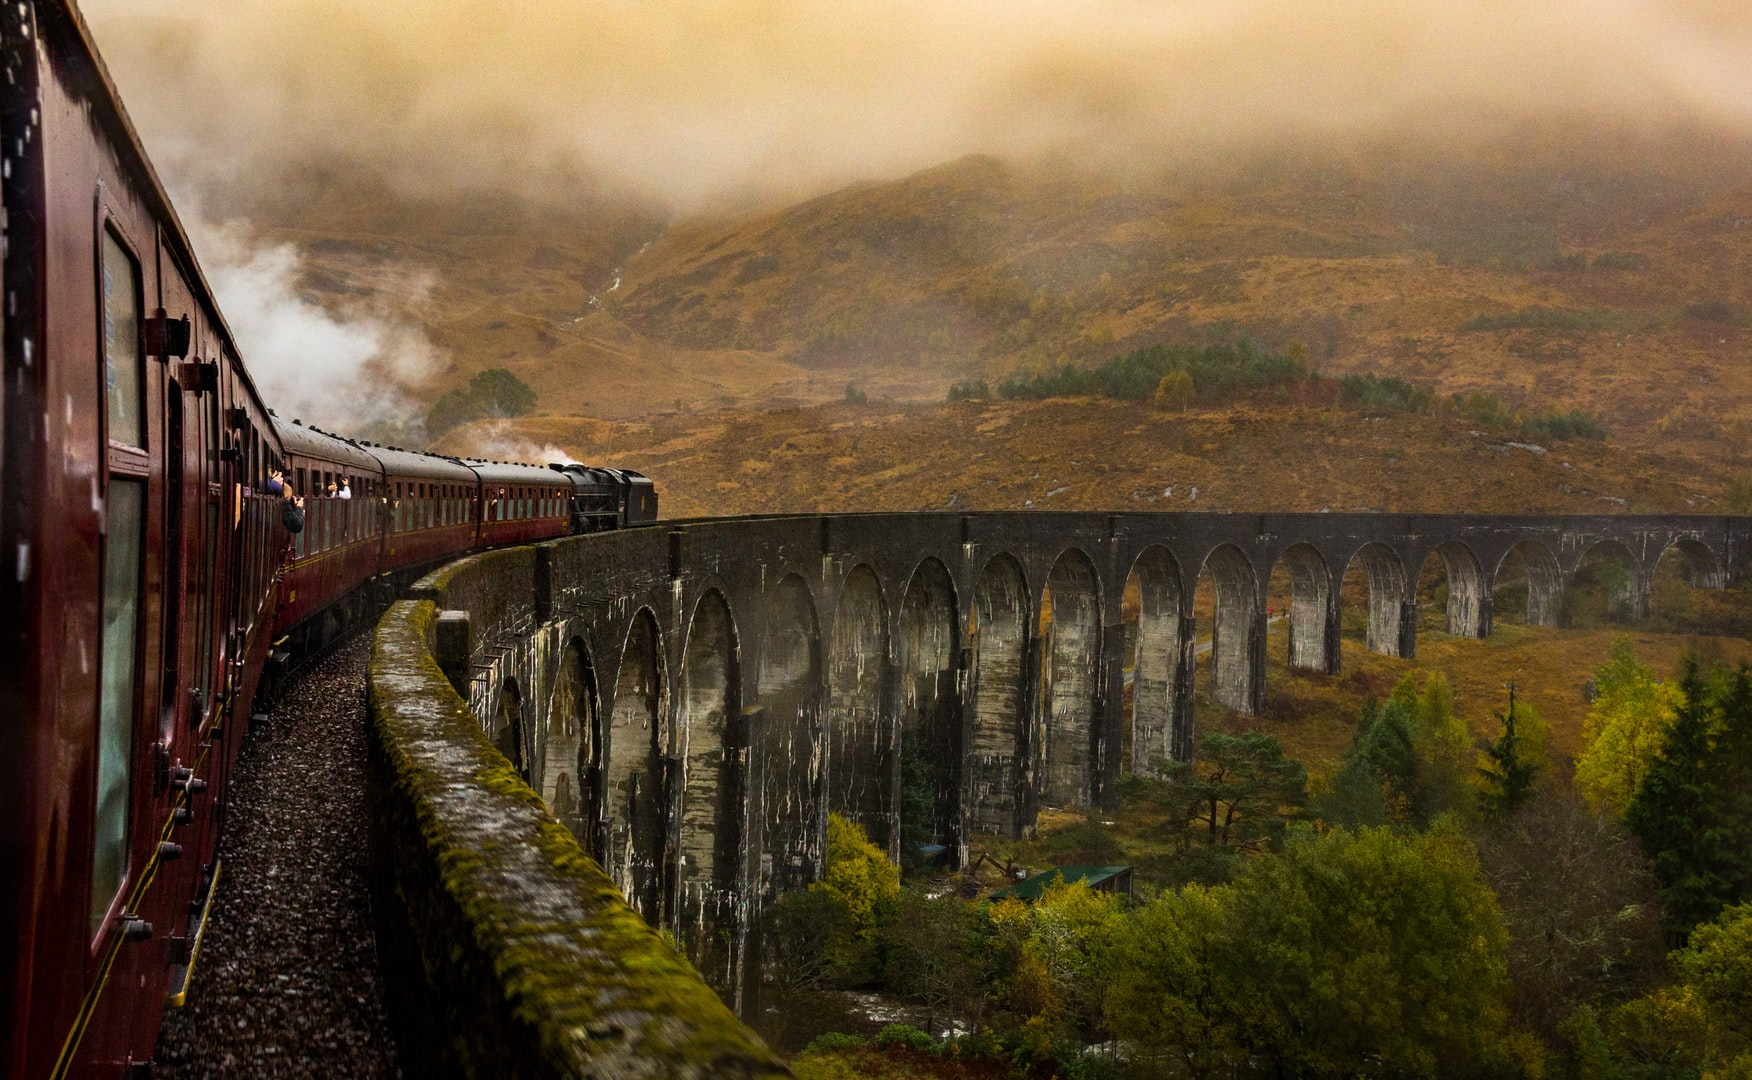 Jacobite steam train over the Glenfinnan Viaduct,  as seen in Harry Potter films going to Hogwarts